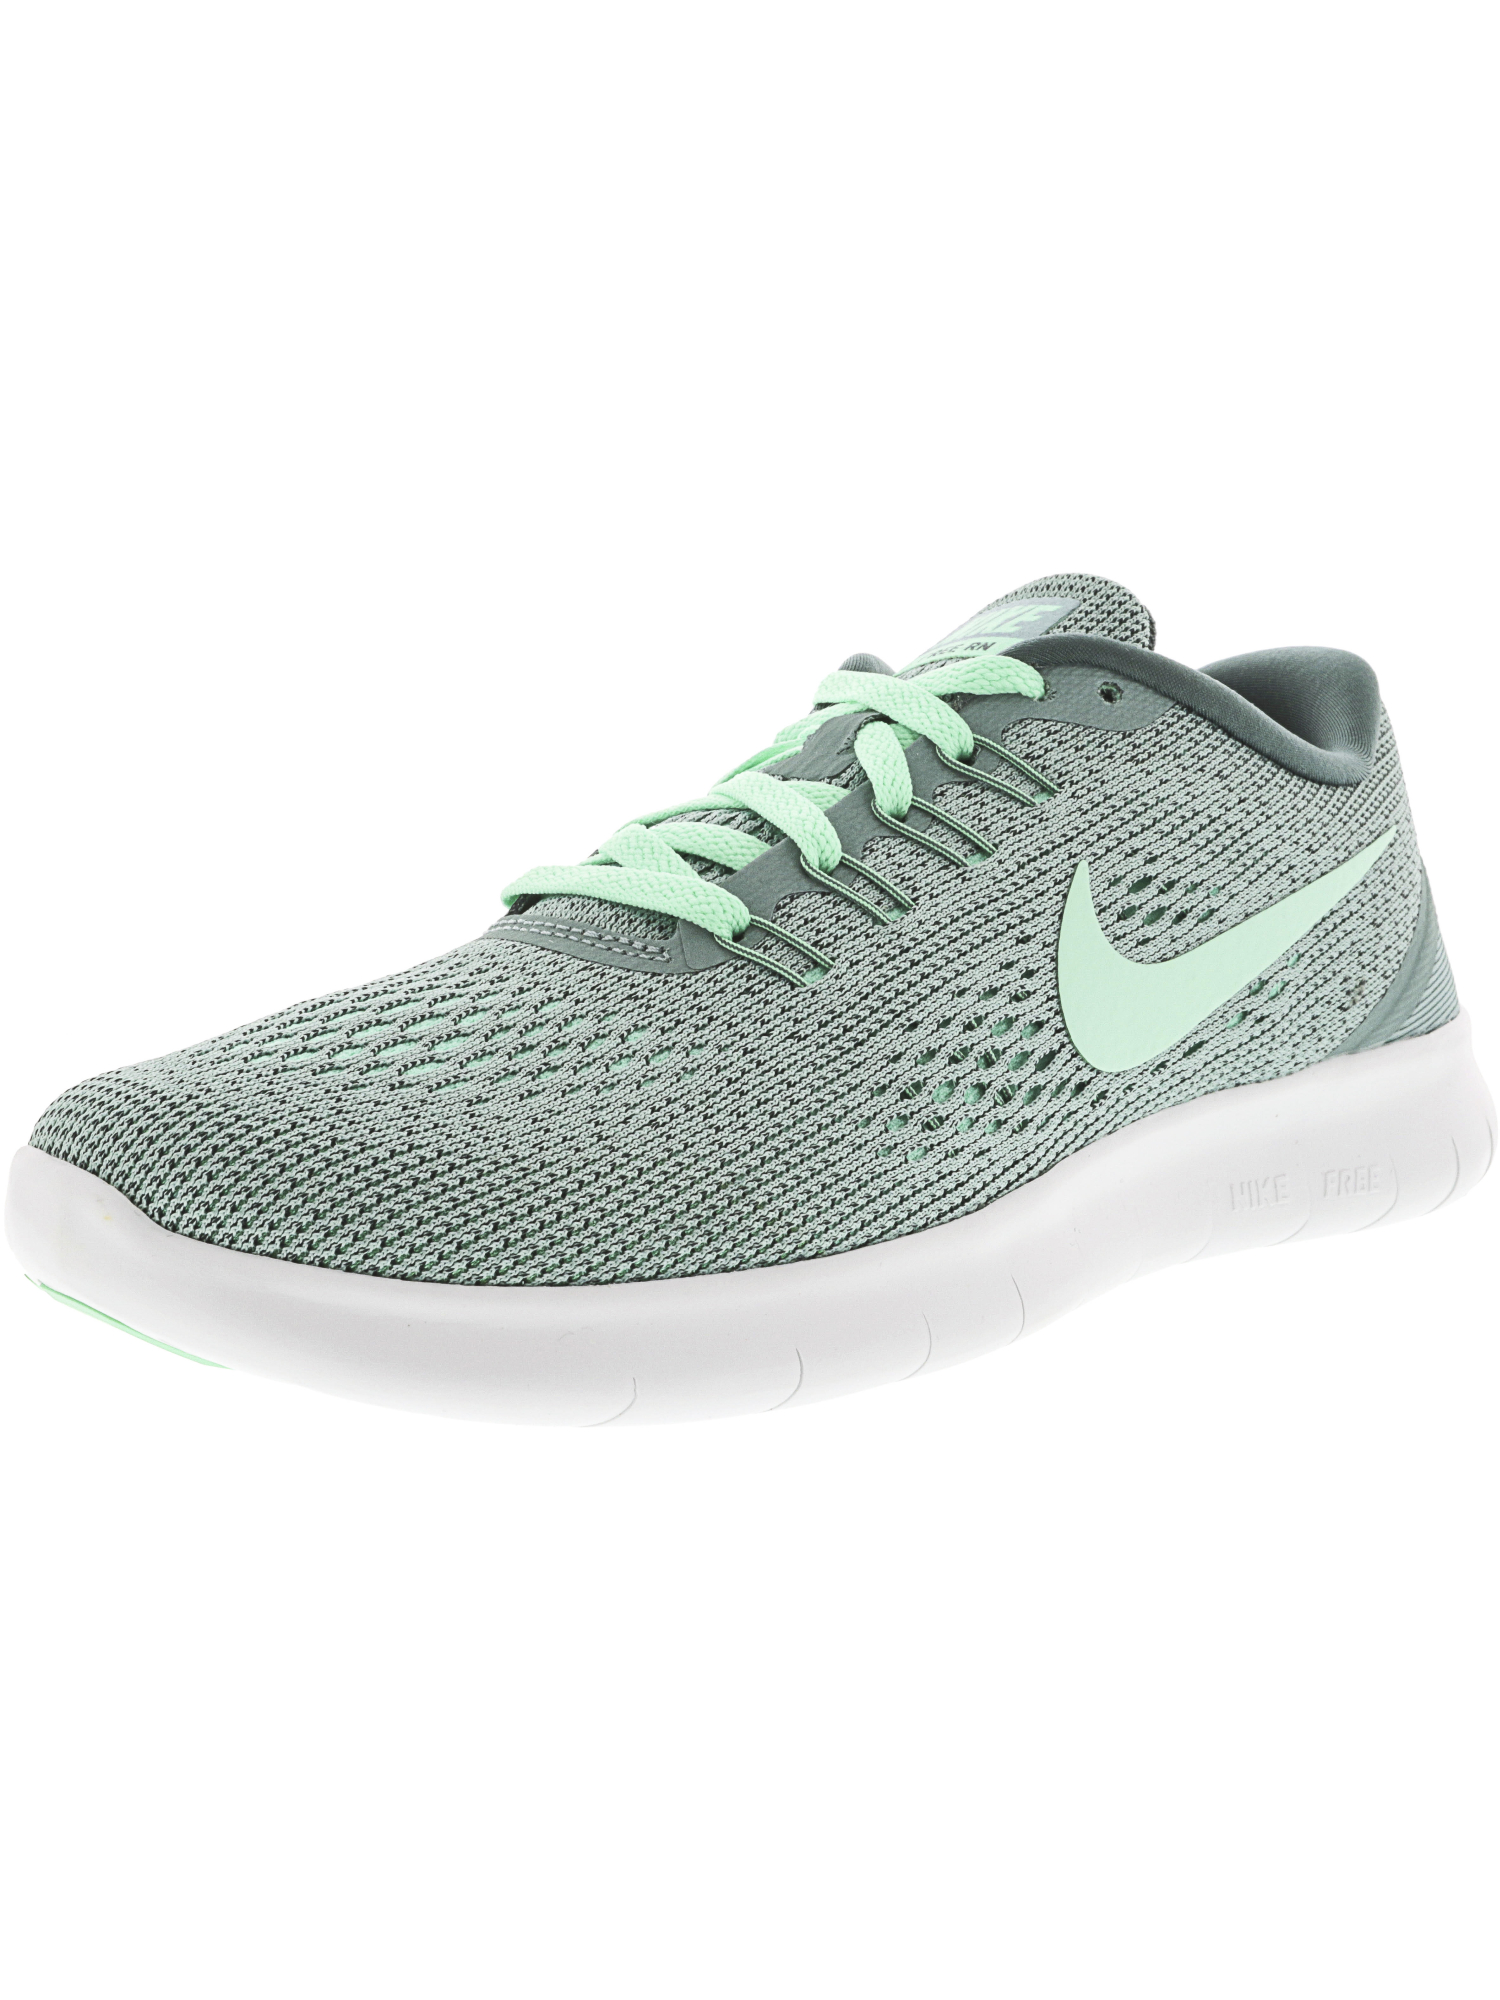 new concept 997fd 3a385 ... Nike Nike Nike Women s Free Rn Ankle-High Running Shoe 3d9112